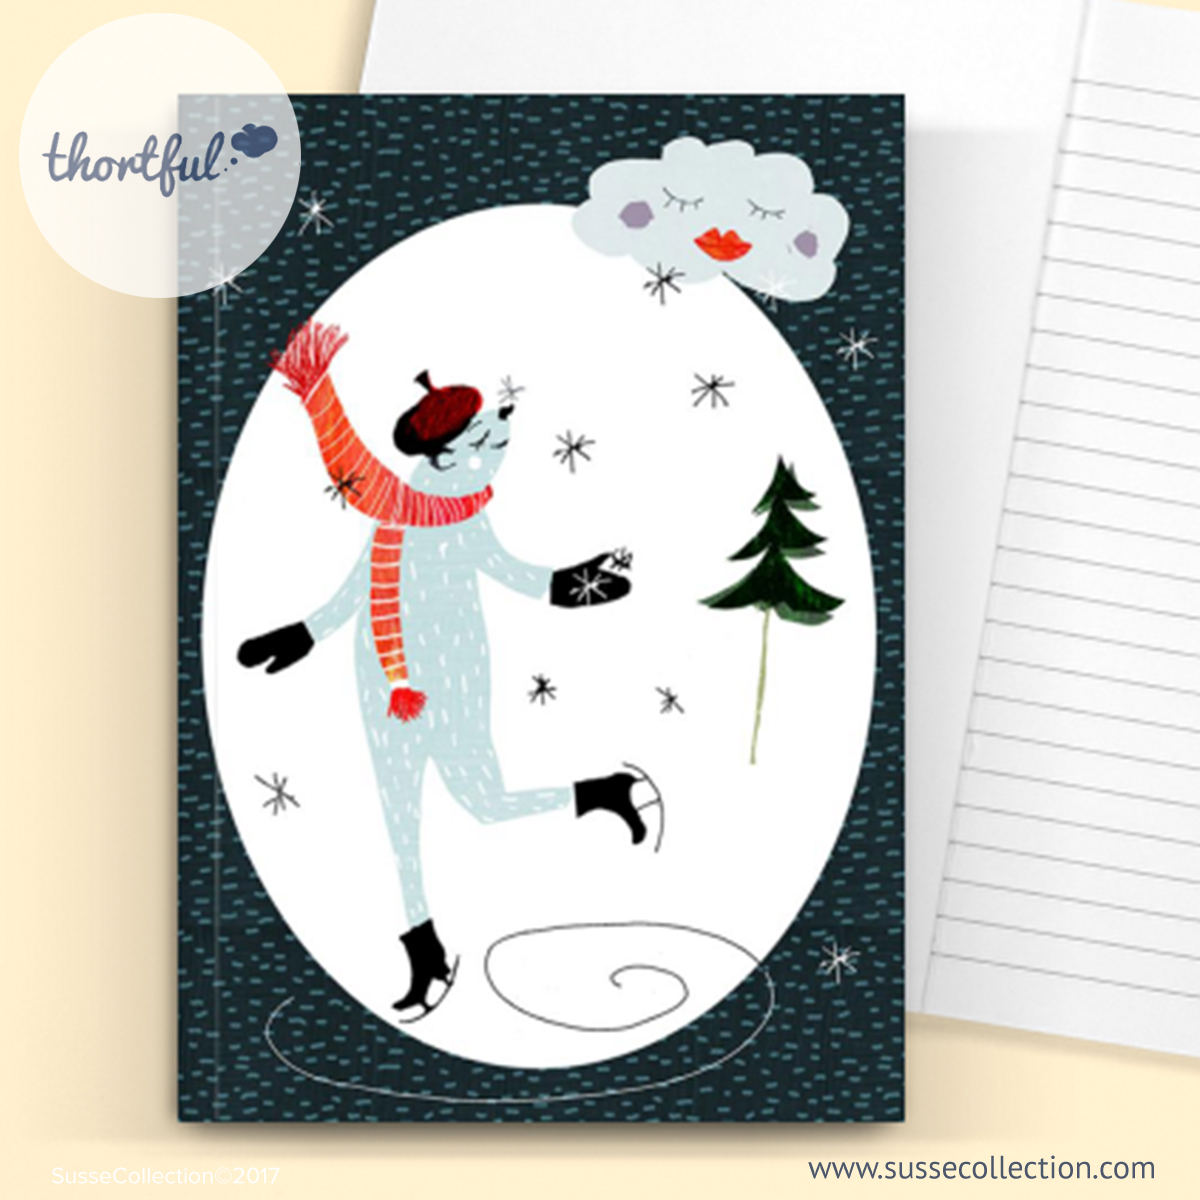 Thortful cards Susse Collection Susse Linton